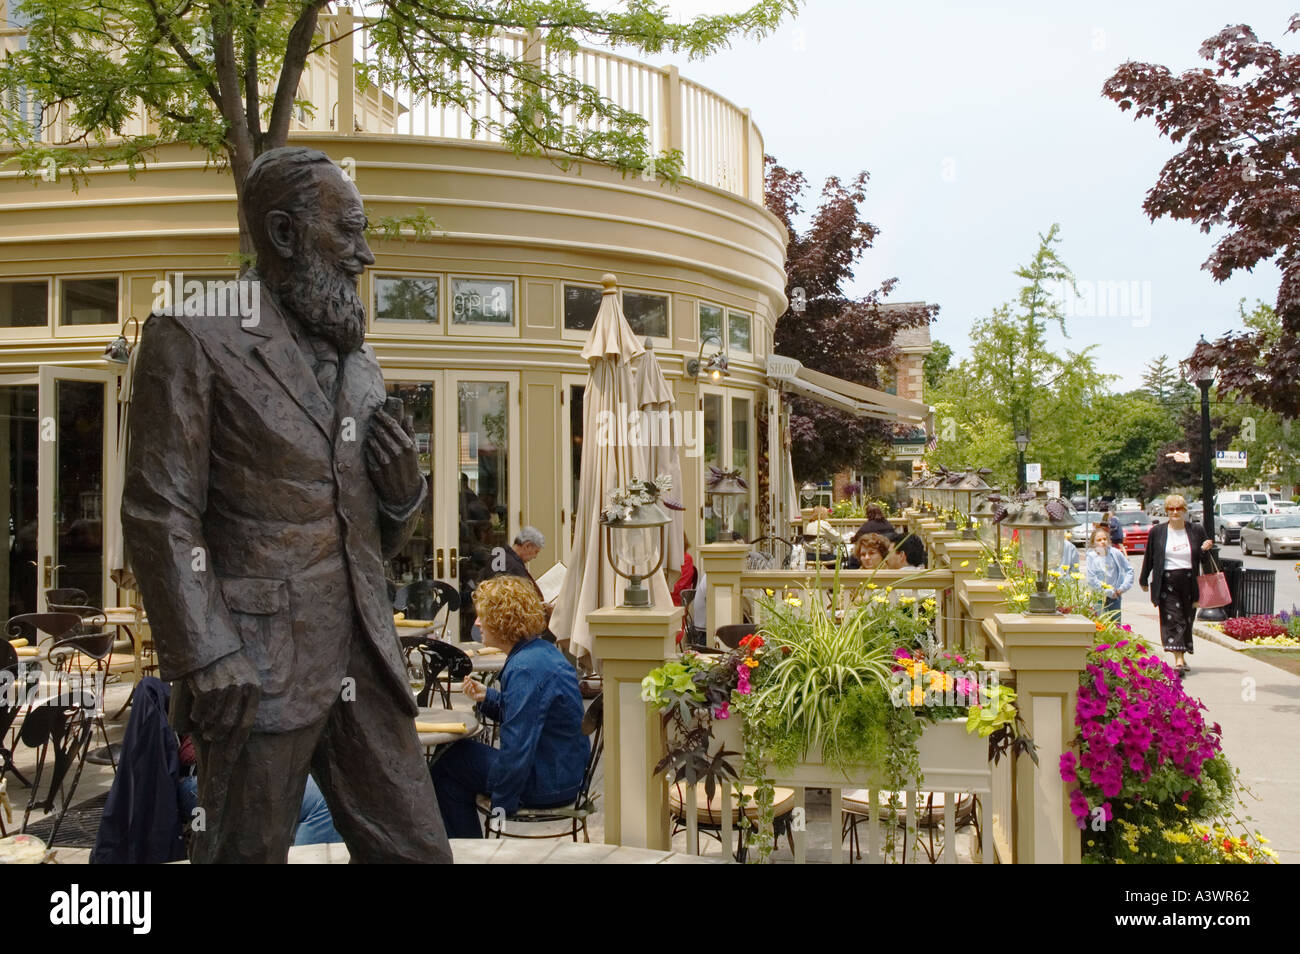 Canada Ontario Niagara on the Lake Shaw Cafe and Wine Bar bronze statue of George Bernard Shaw exterior terrace - Stock Image